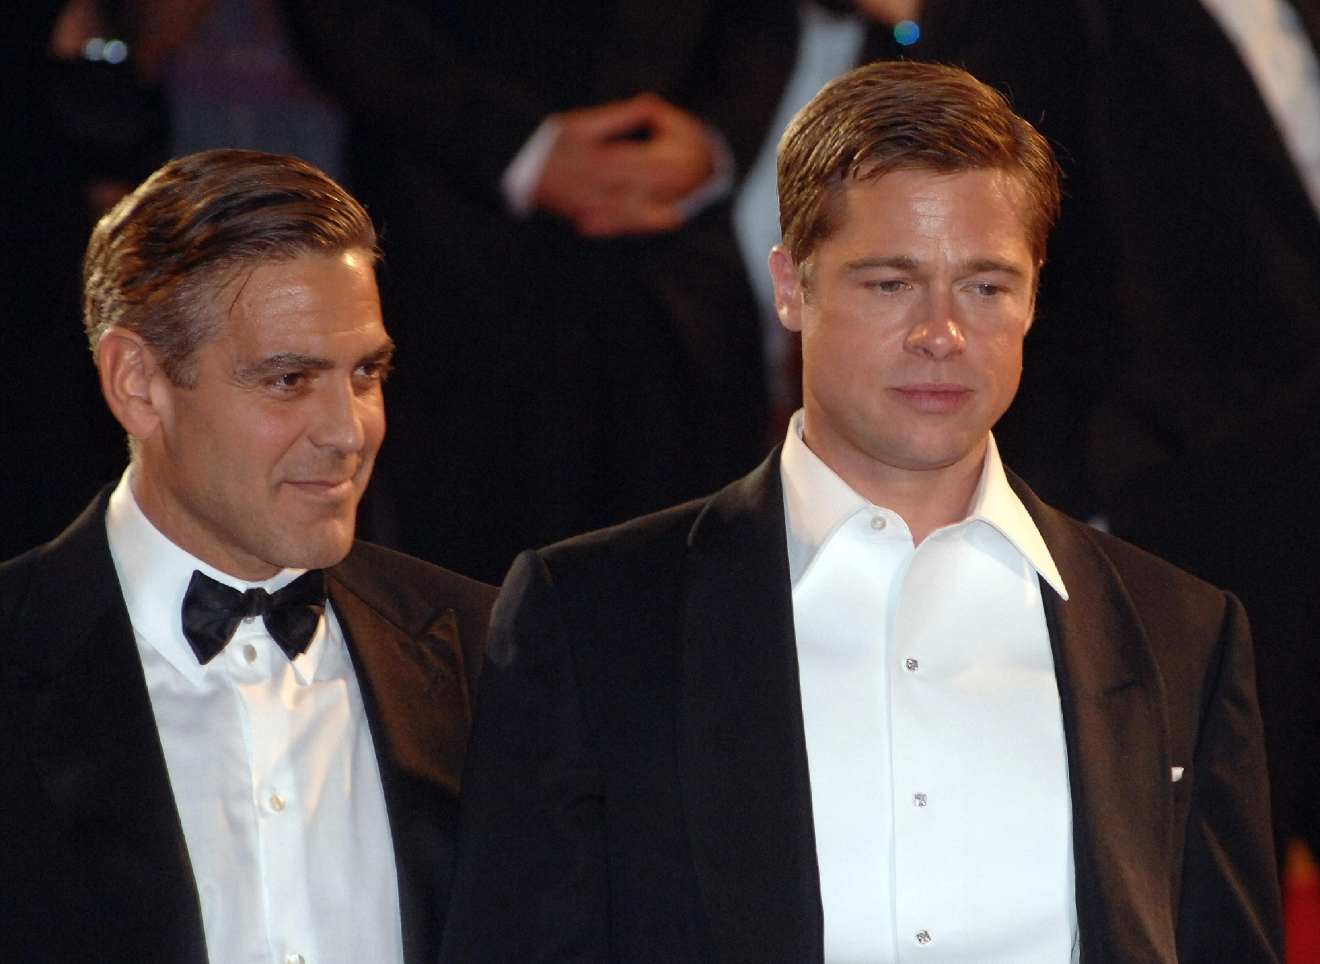 George Clooney and Brad Pitt 2007 Cannes Film Festival Day 9 - 'Ocean's Thirteen' premiere - Departures  Featuring: George Clooney and Brad Pitt Where: Cannes, France When: 24 May 2007 Credit: WENN